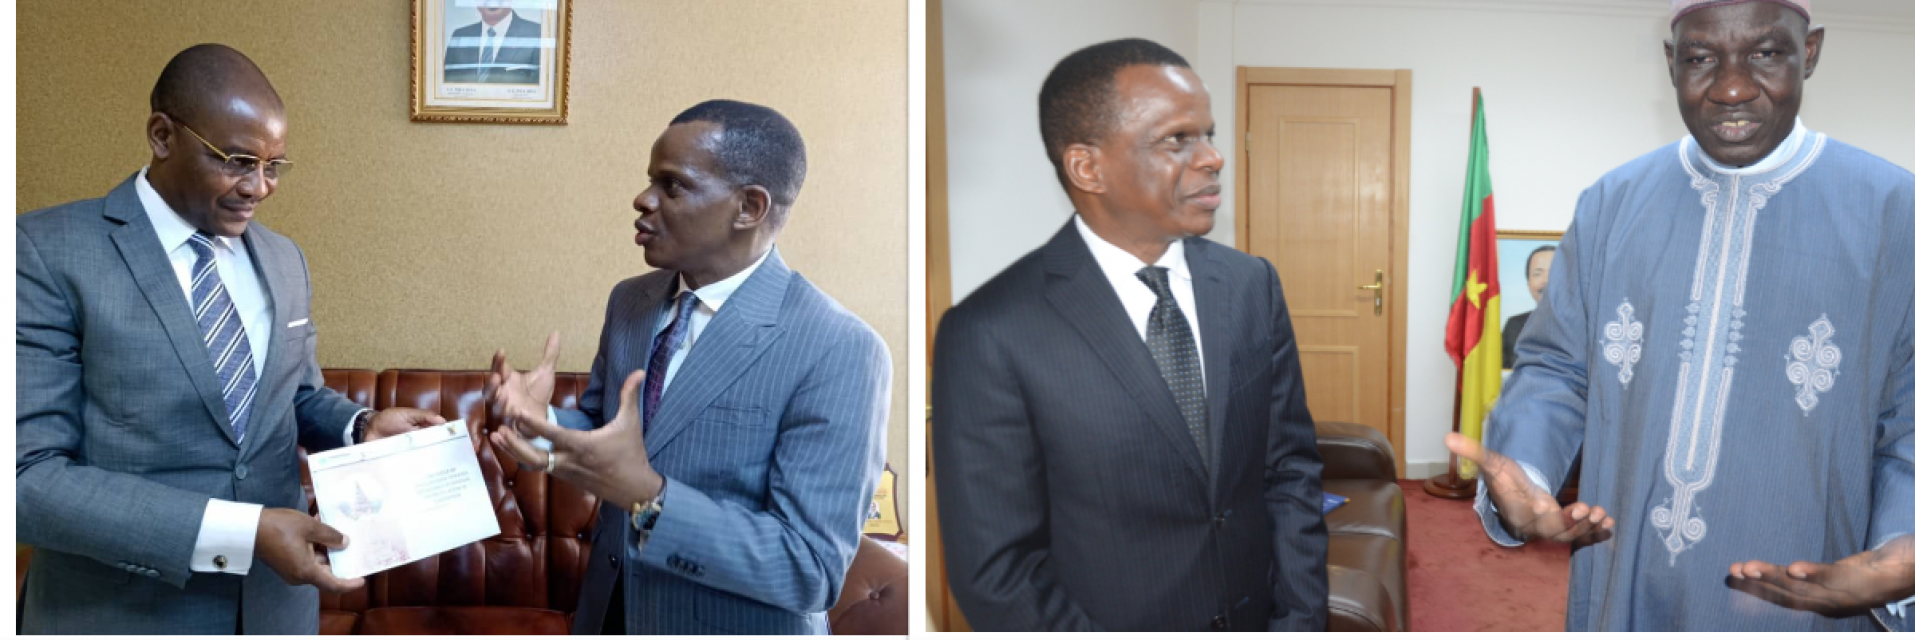 Plaudits for milestones in ECA-Cameroon relations during Antonio Pedro's term as Head of Central Africa Office